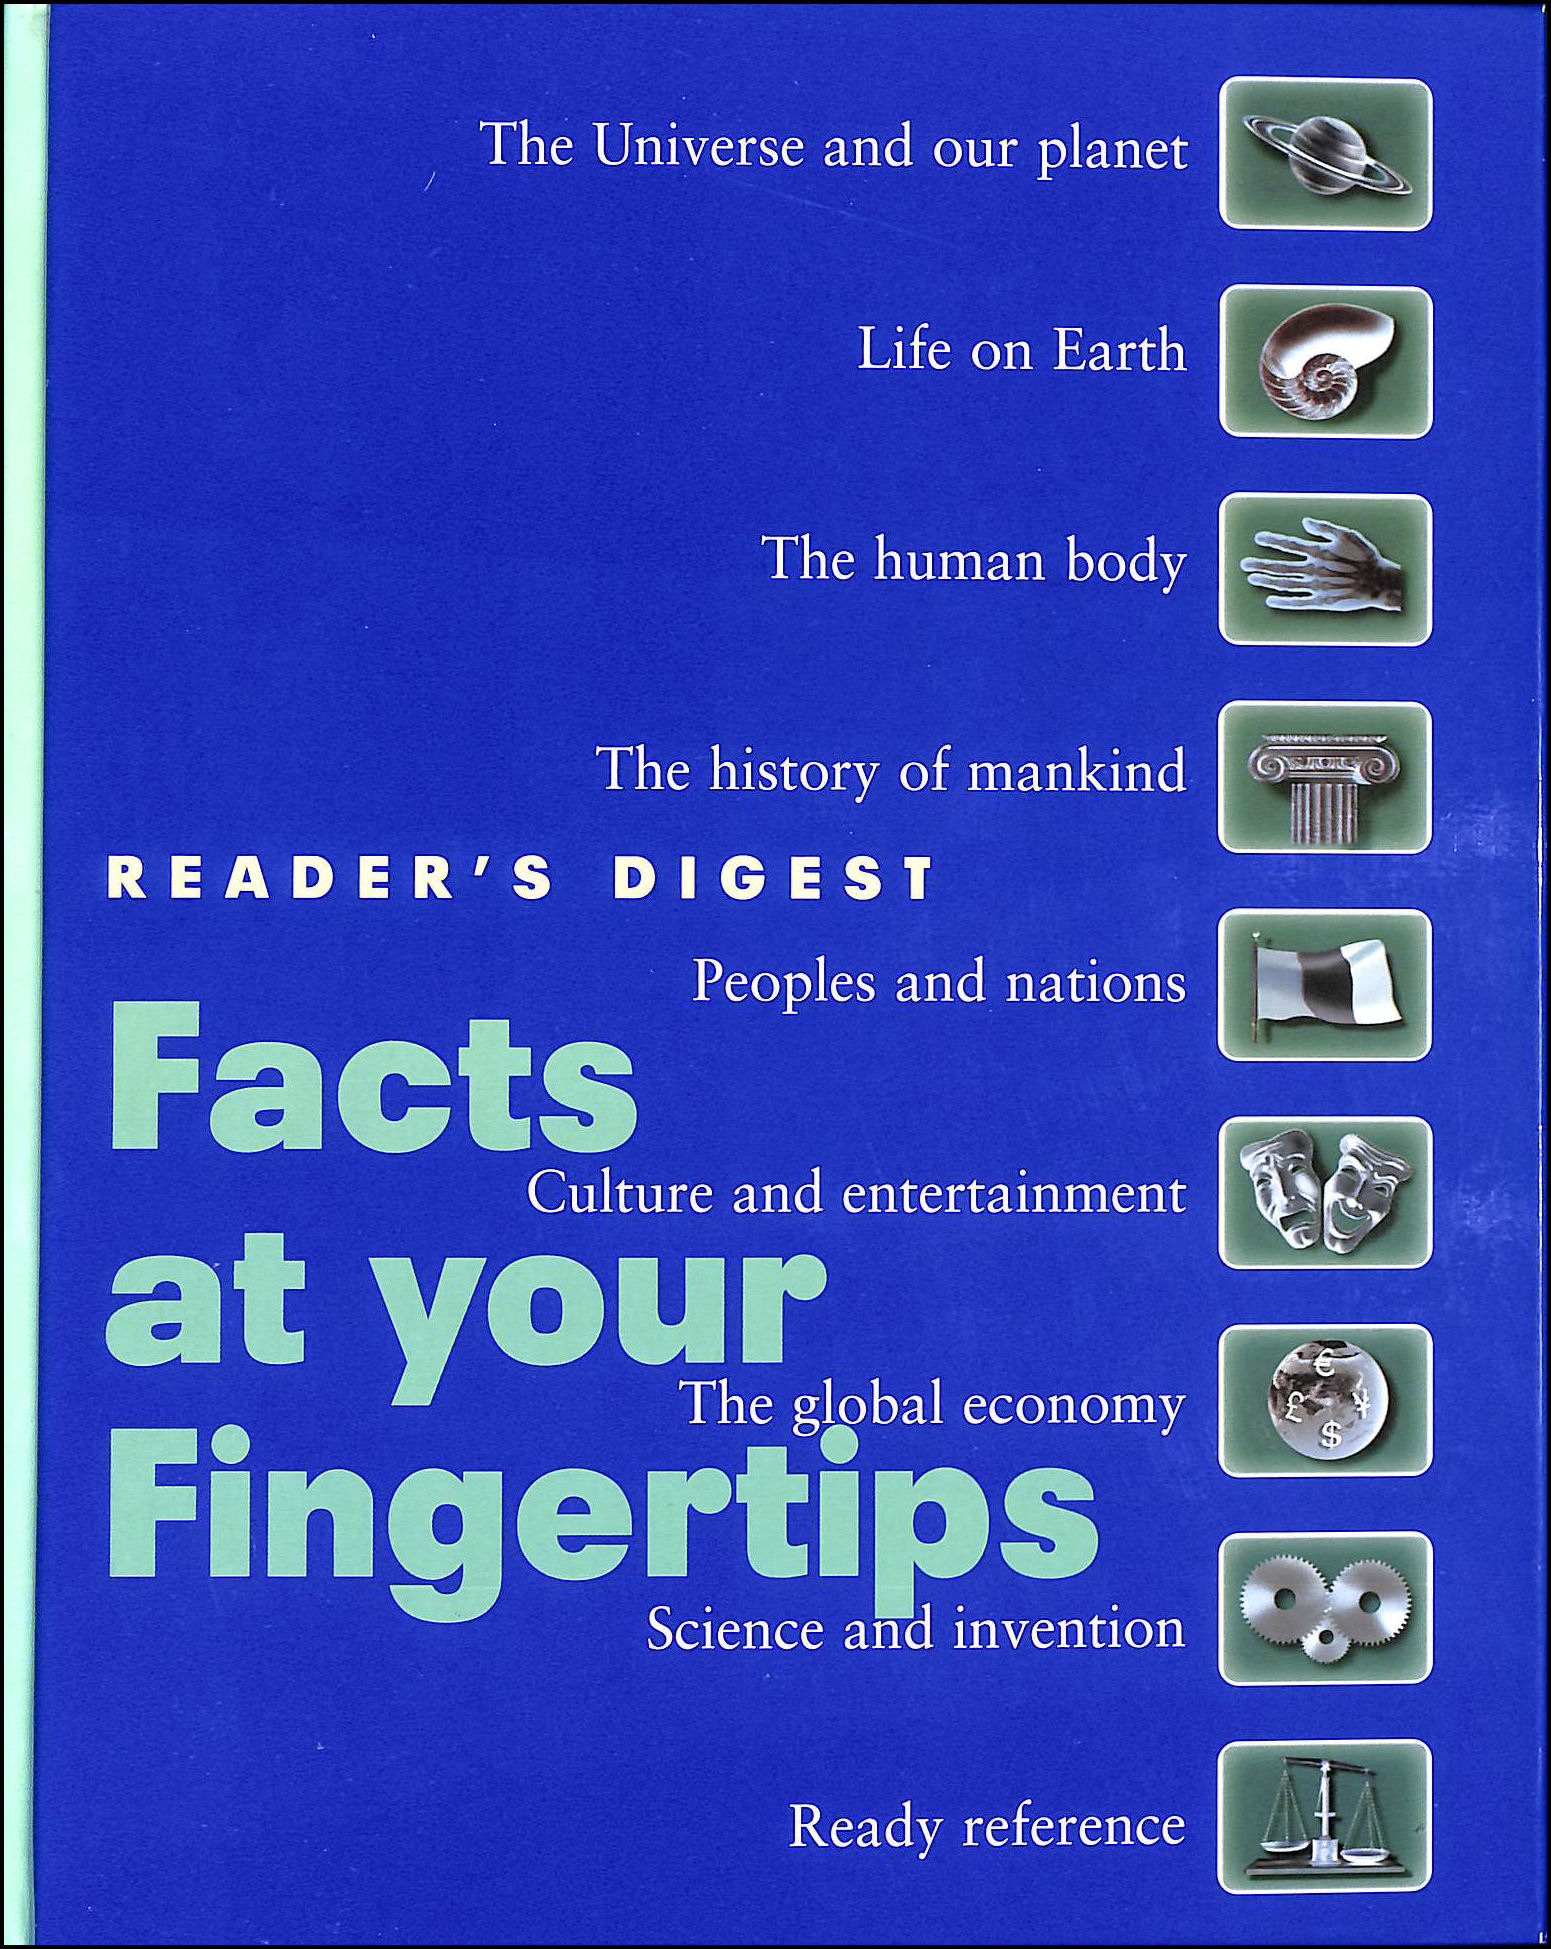 Facts at Your Fingertips (Readers Digest), Reader's Digest